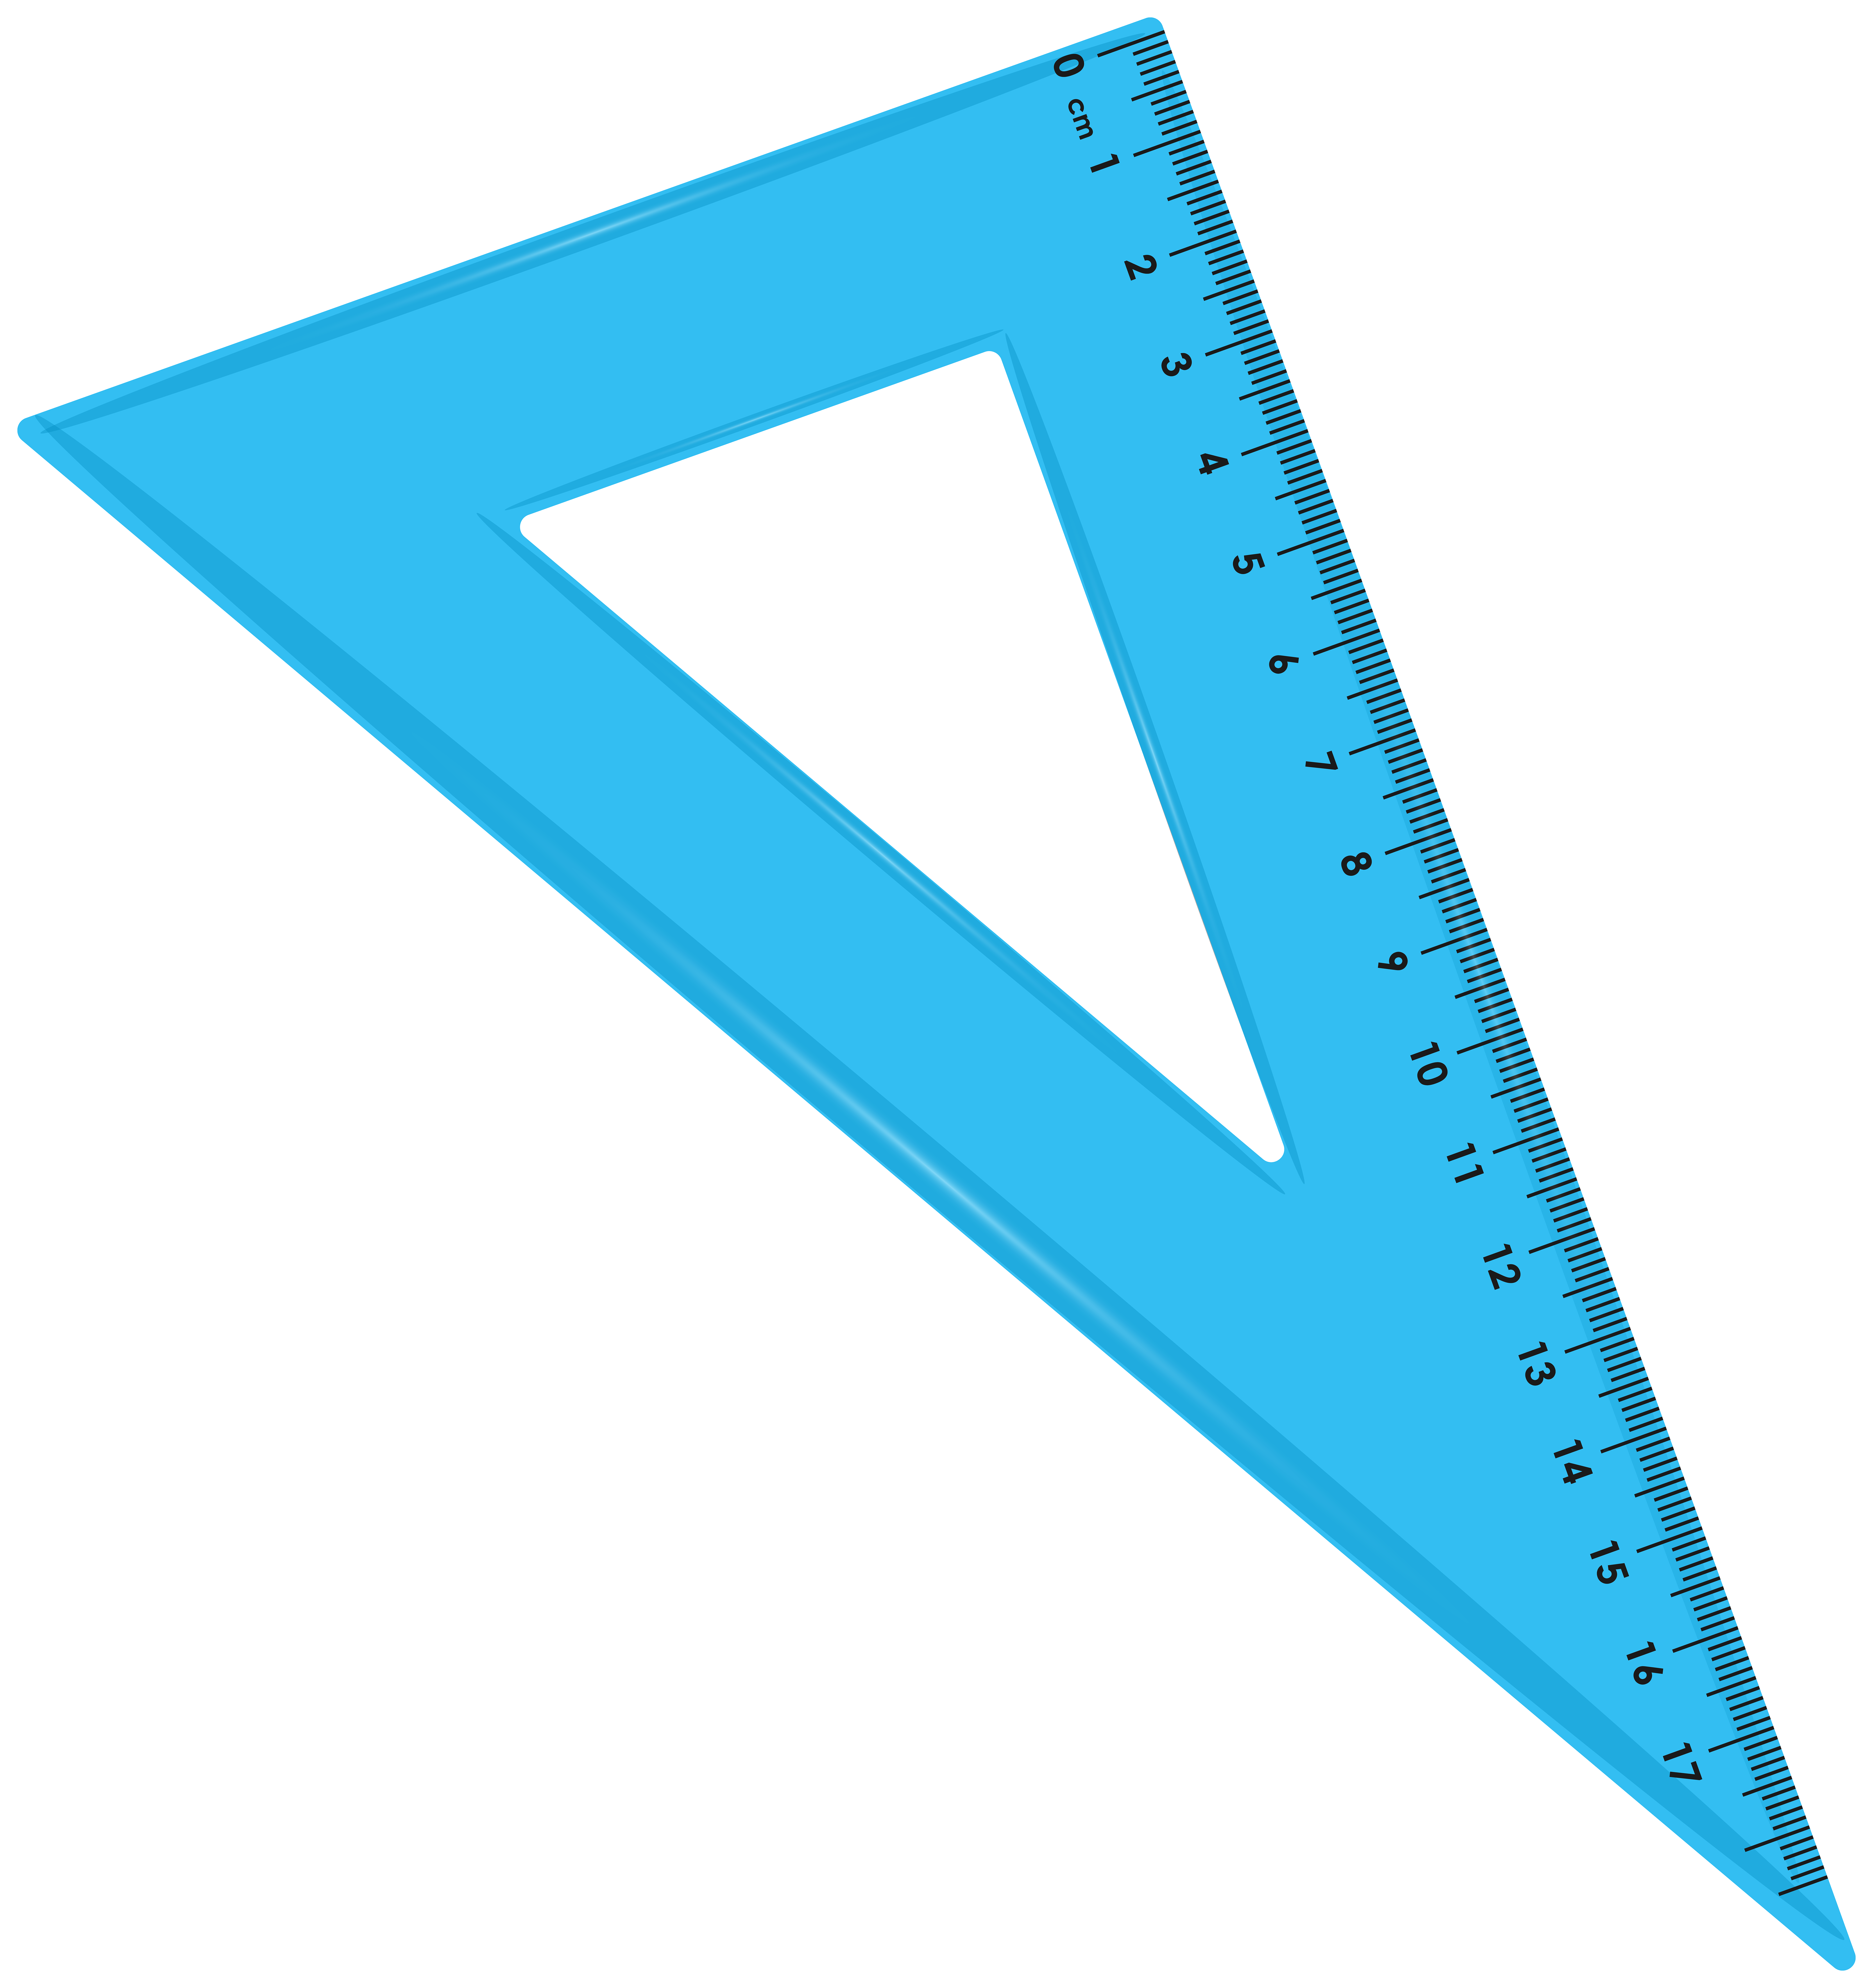 School png gallery yopriceville. Clipart ruler triangle ruler